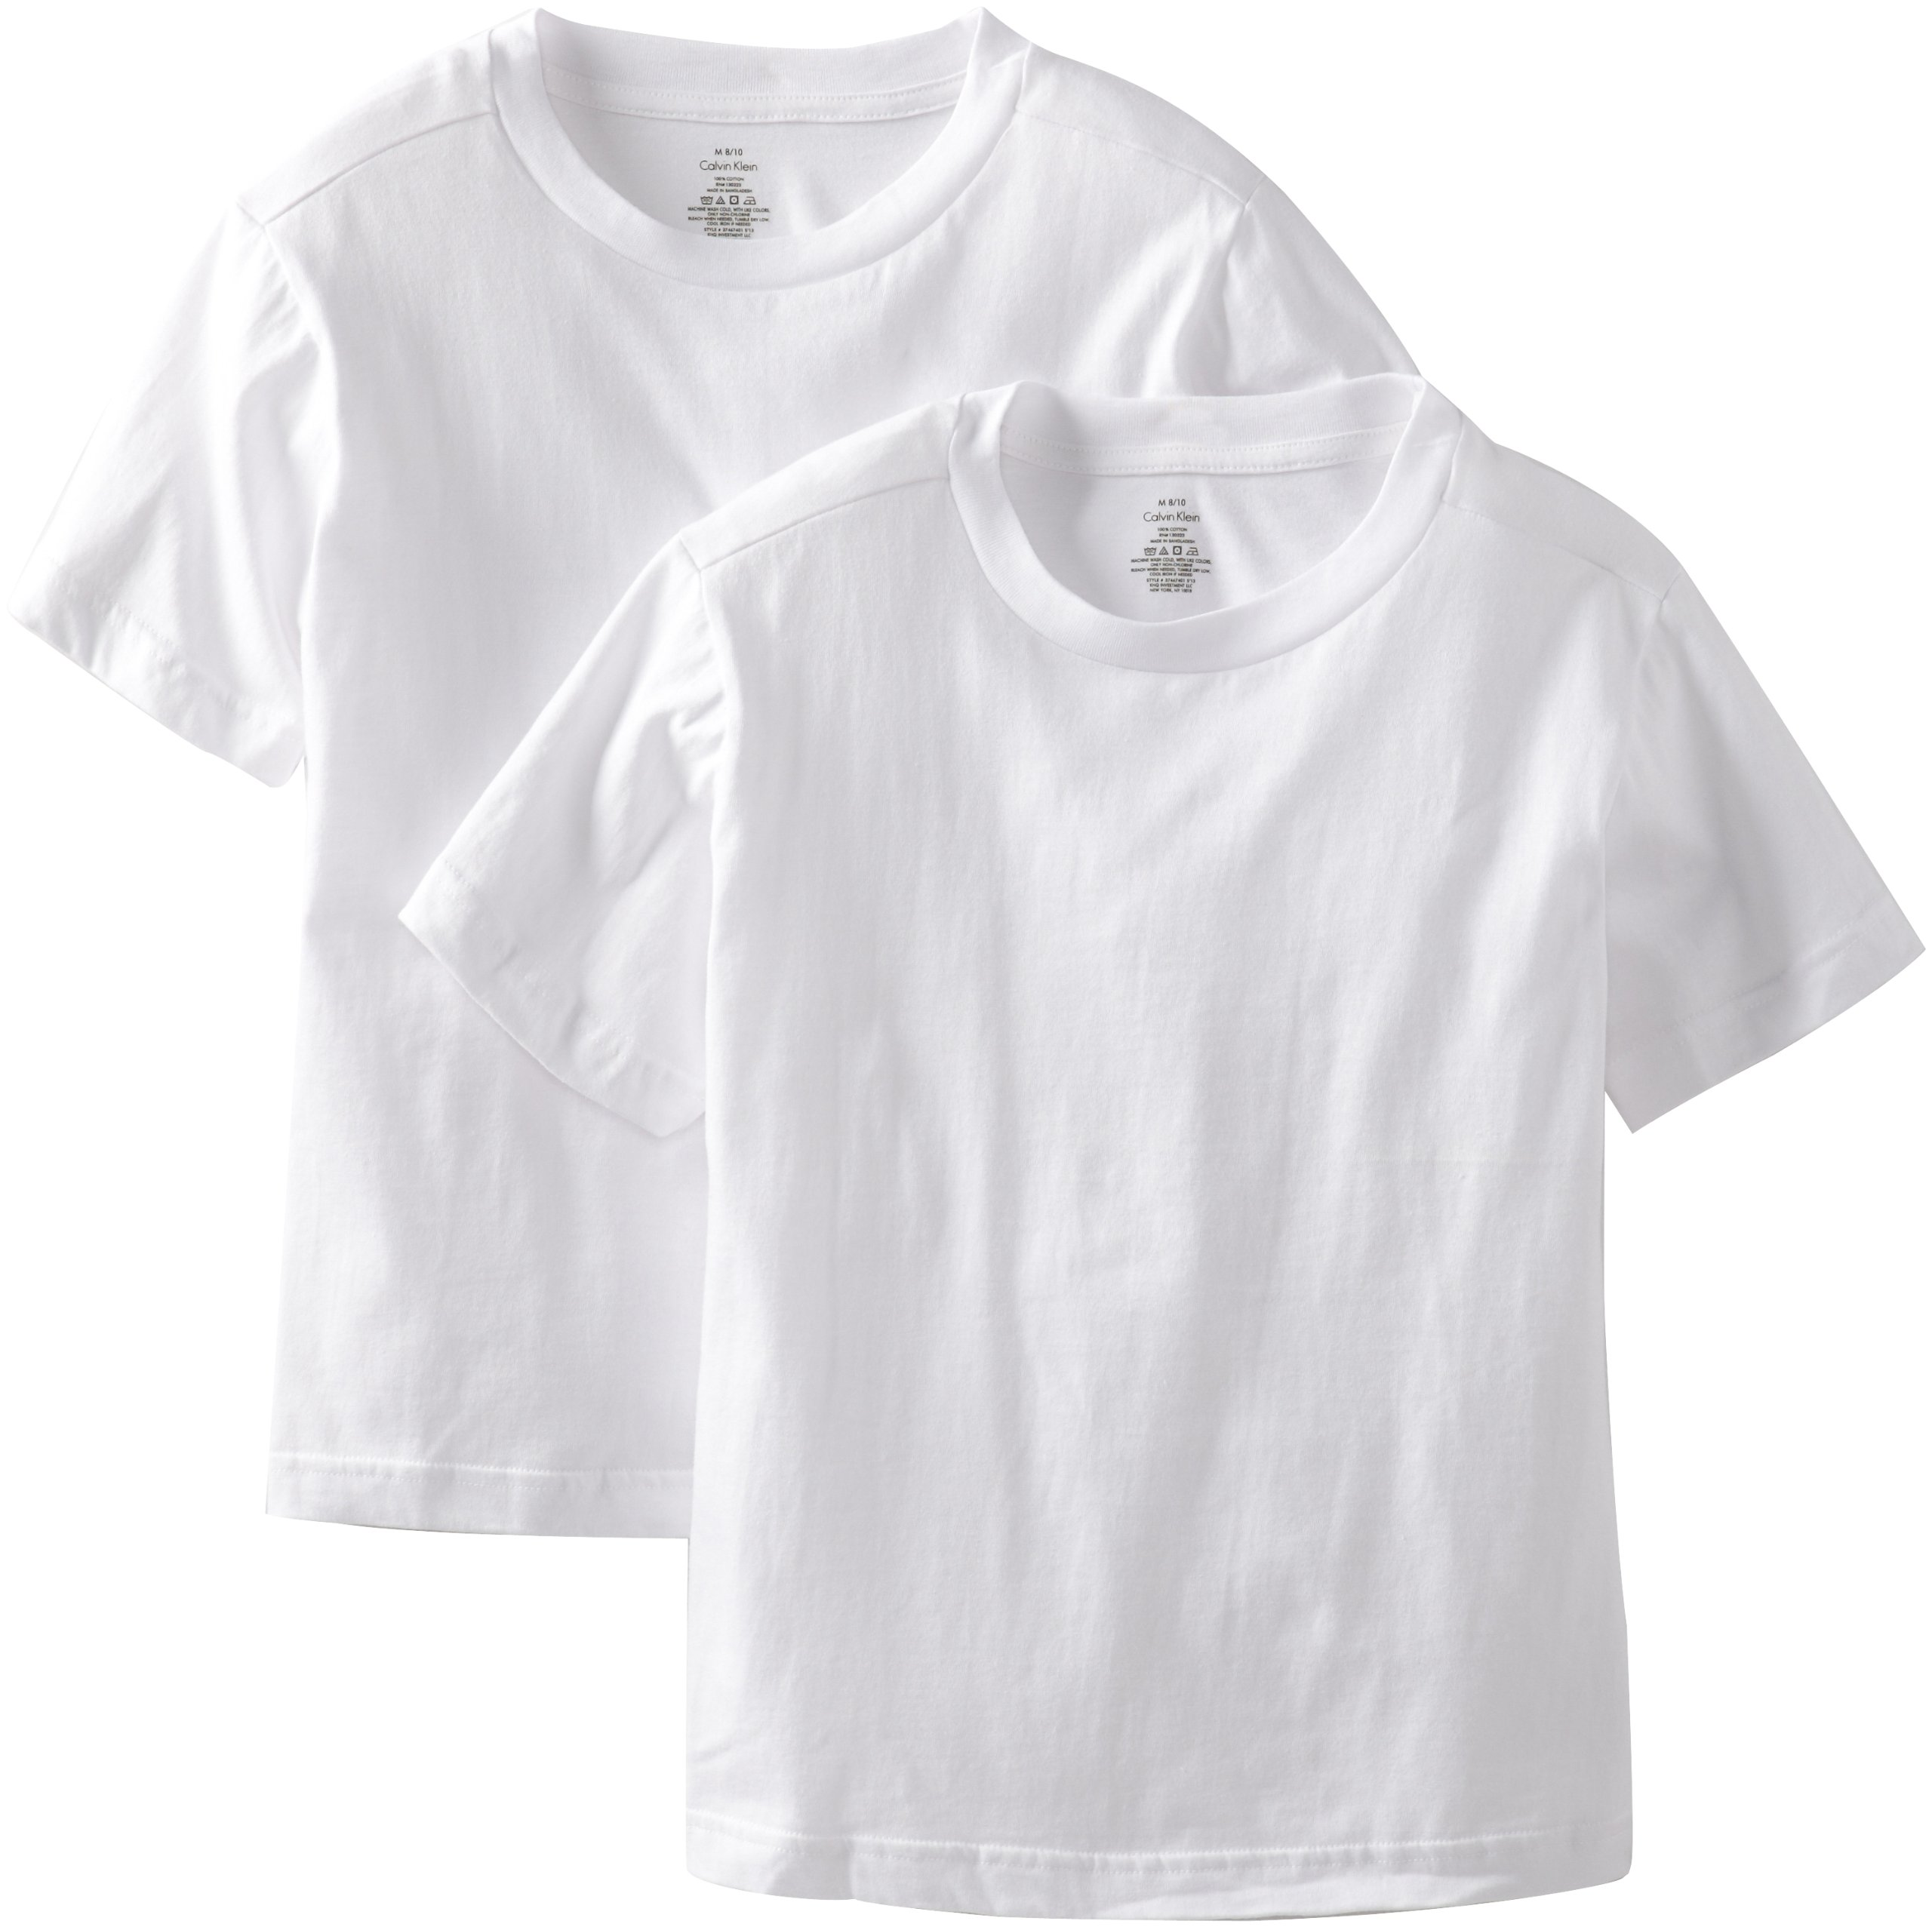 Calvin Klein Big Boys' 2 Pack Undershirts, White, X-Large